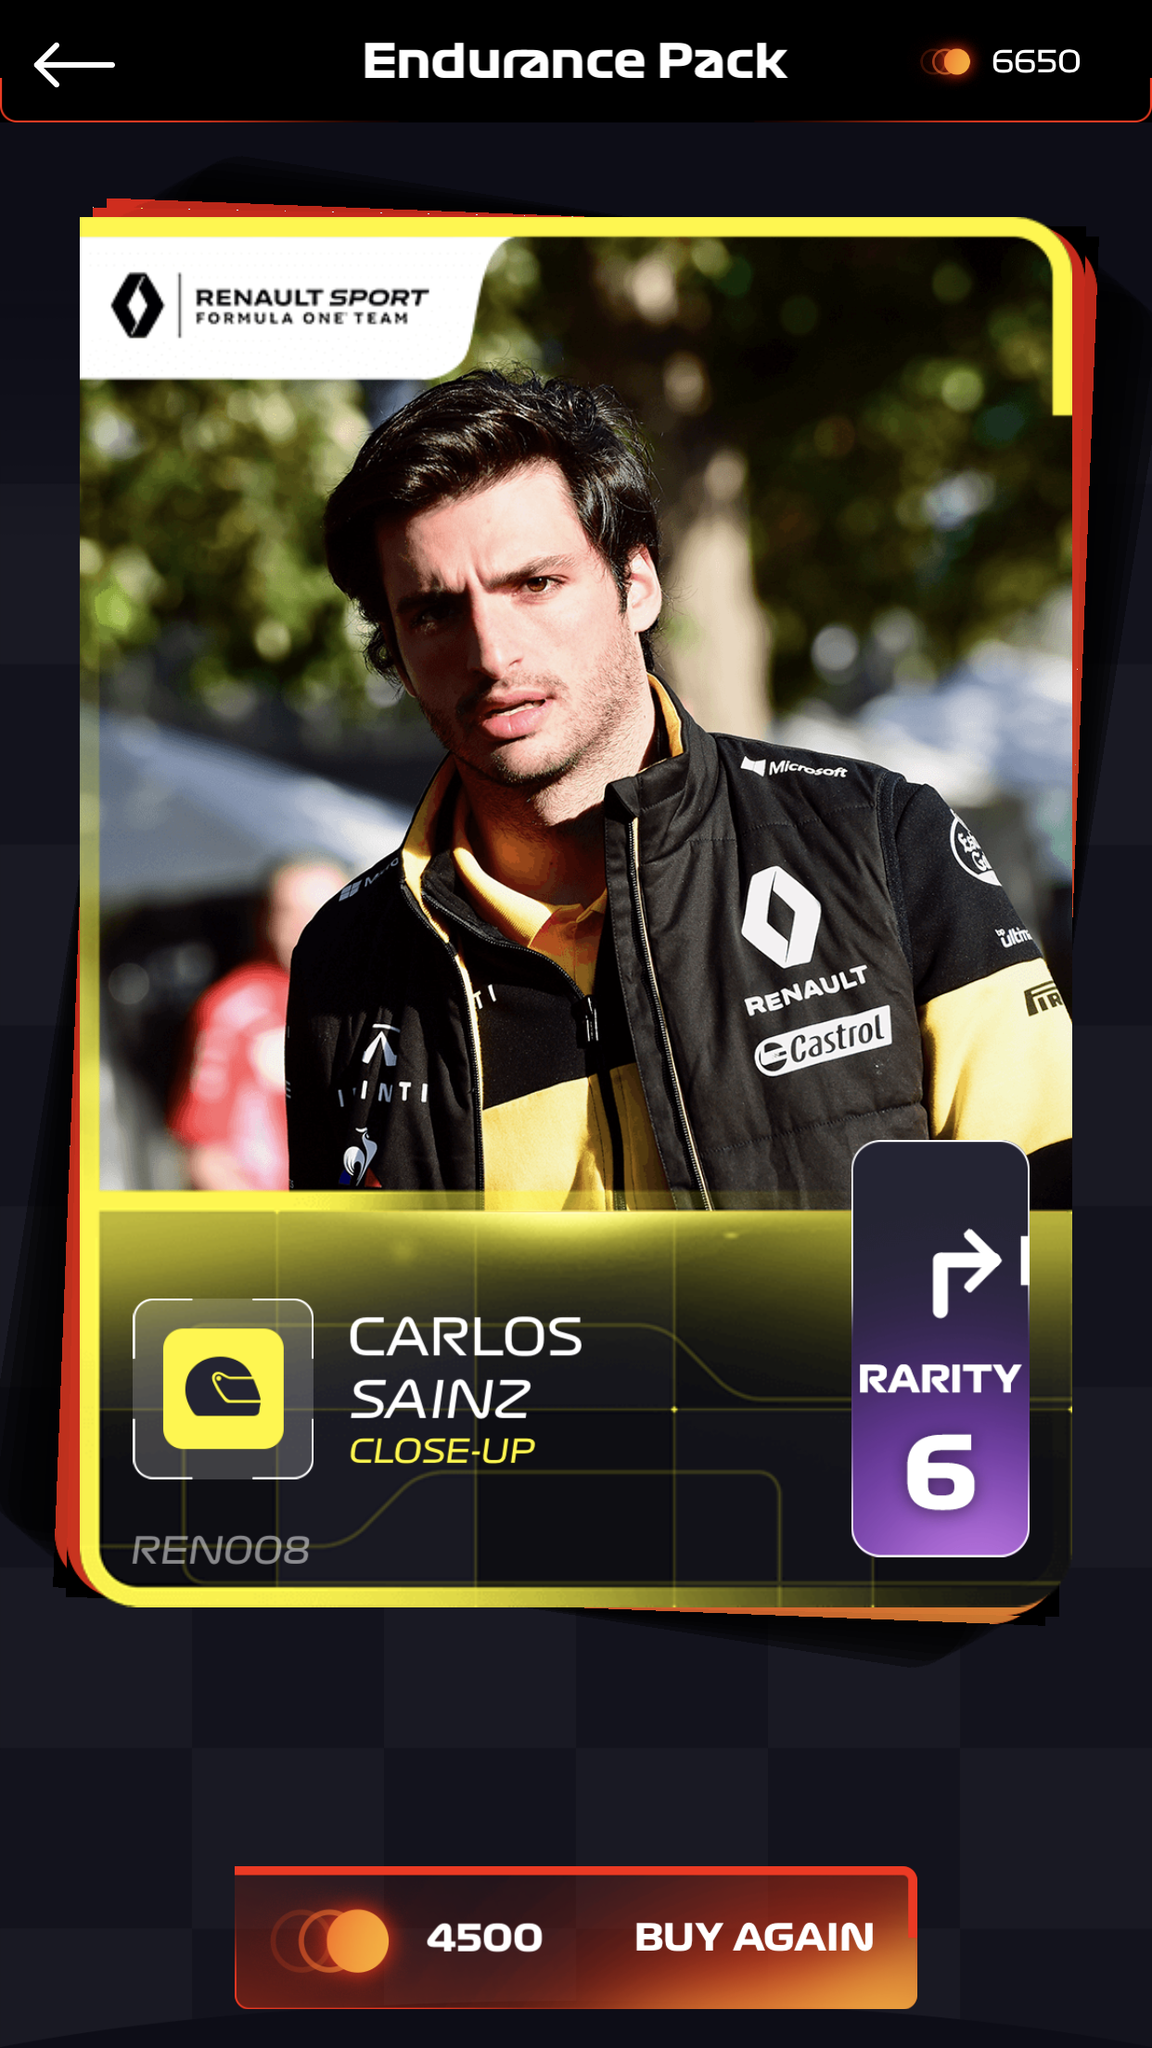 F1 Trading Card Game screenshot - Close up on a Carlos Sainz card